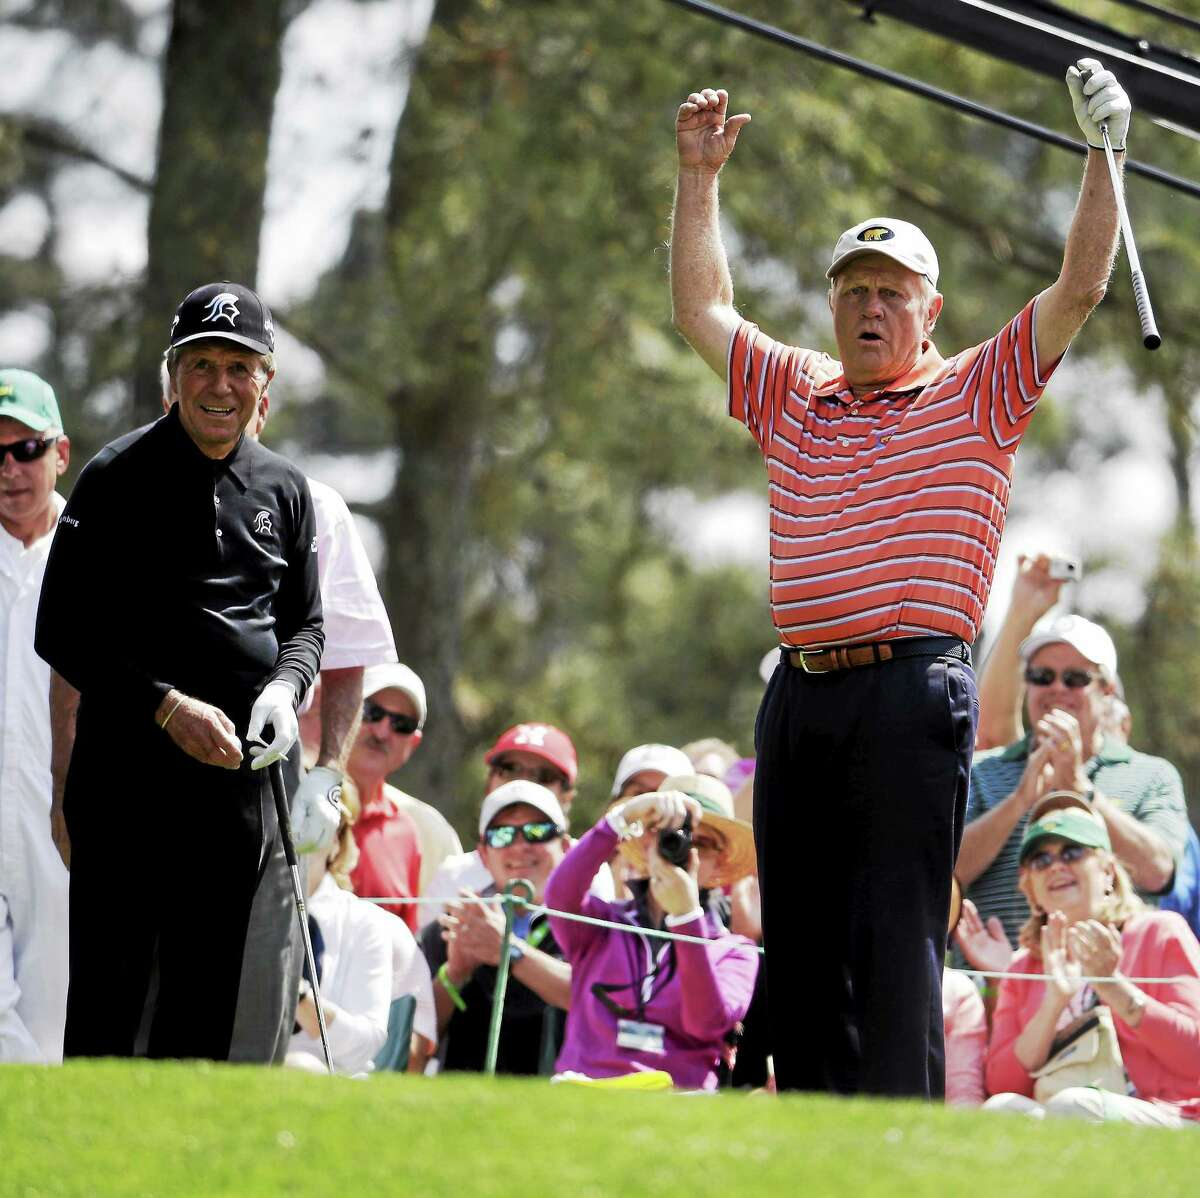 Gary Player, left, watches as Jack Nicklaus reacts to his tee shot on the first hole during the par-3 competition at the Masters on April 9 in Augusta, Ga.